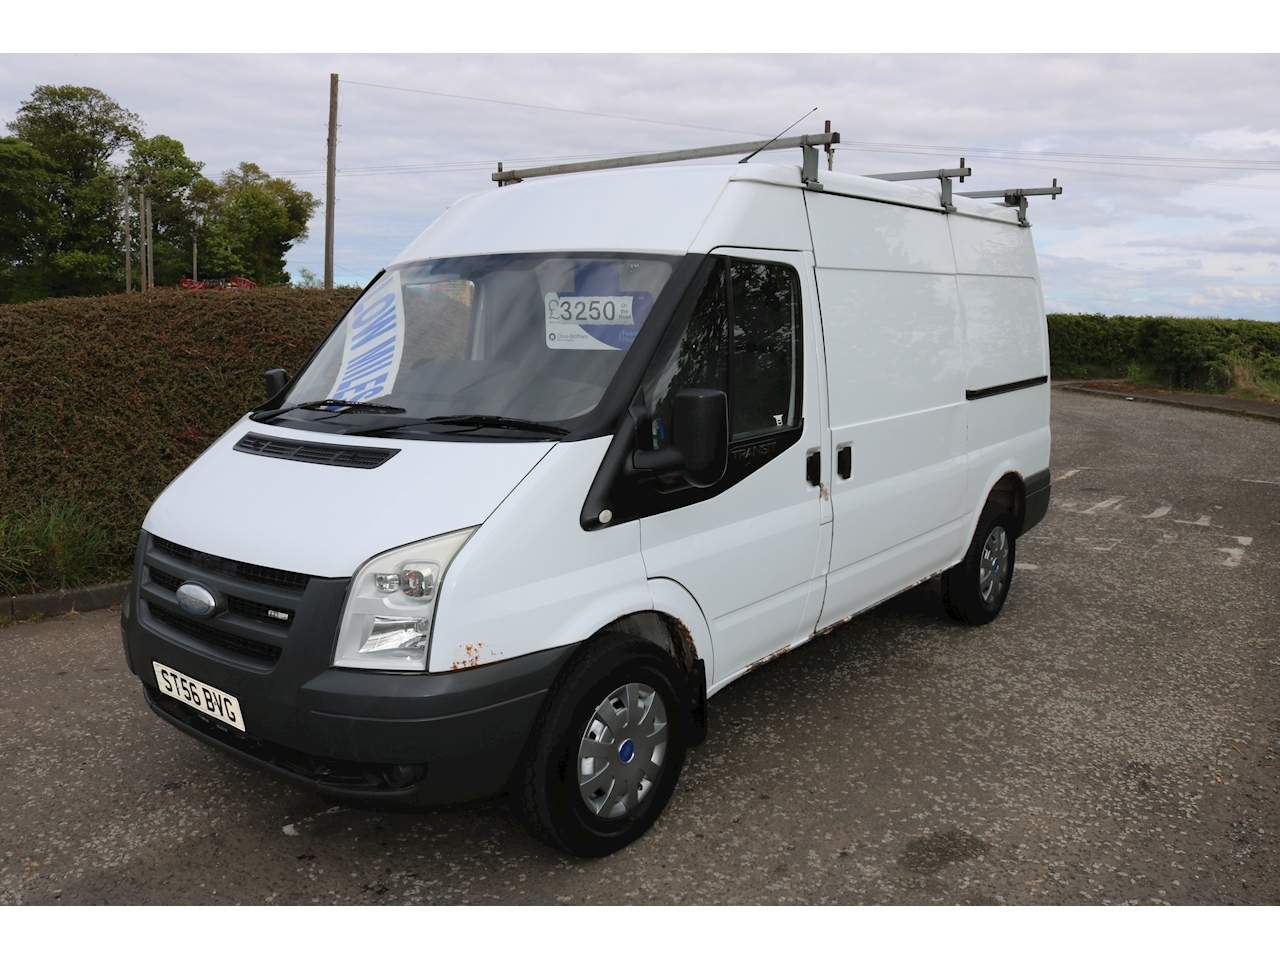 Transit 350 Mwb Shr P/V 100 Panel Van 2.4 Manual Diesel